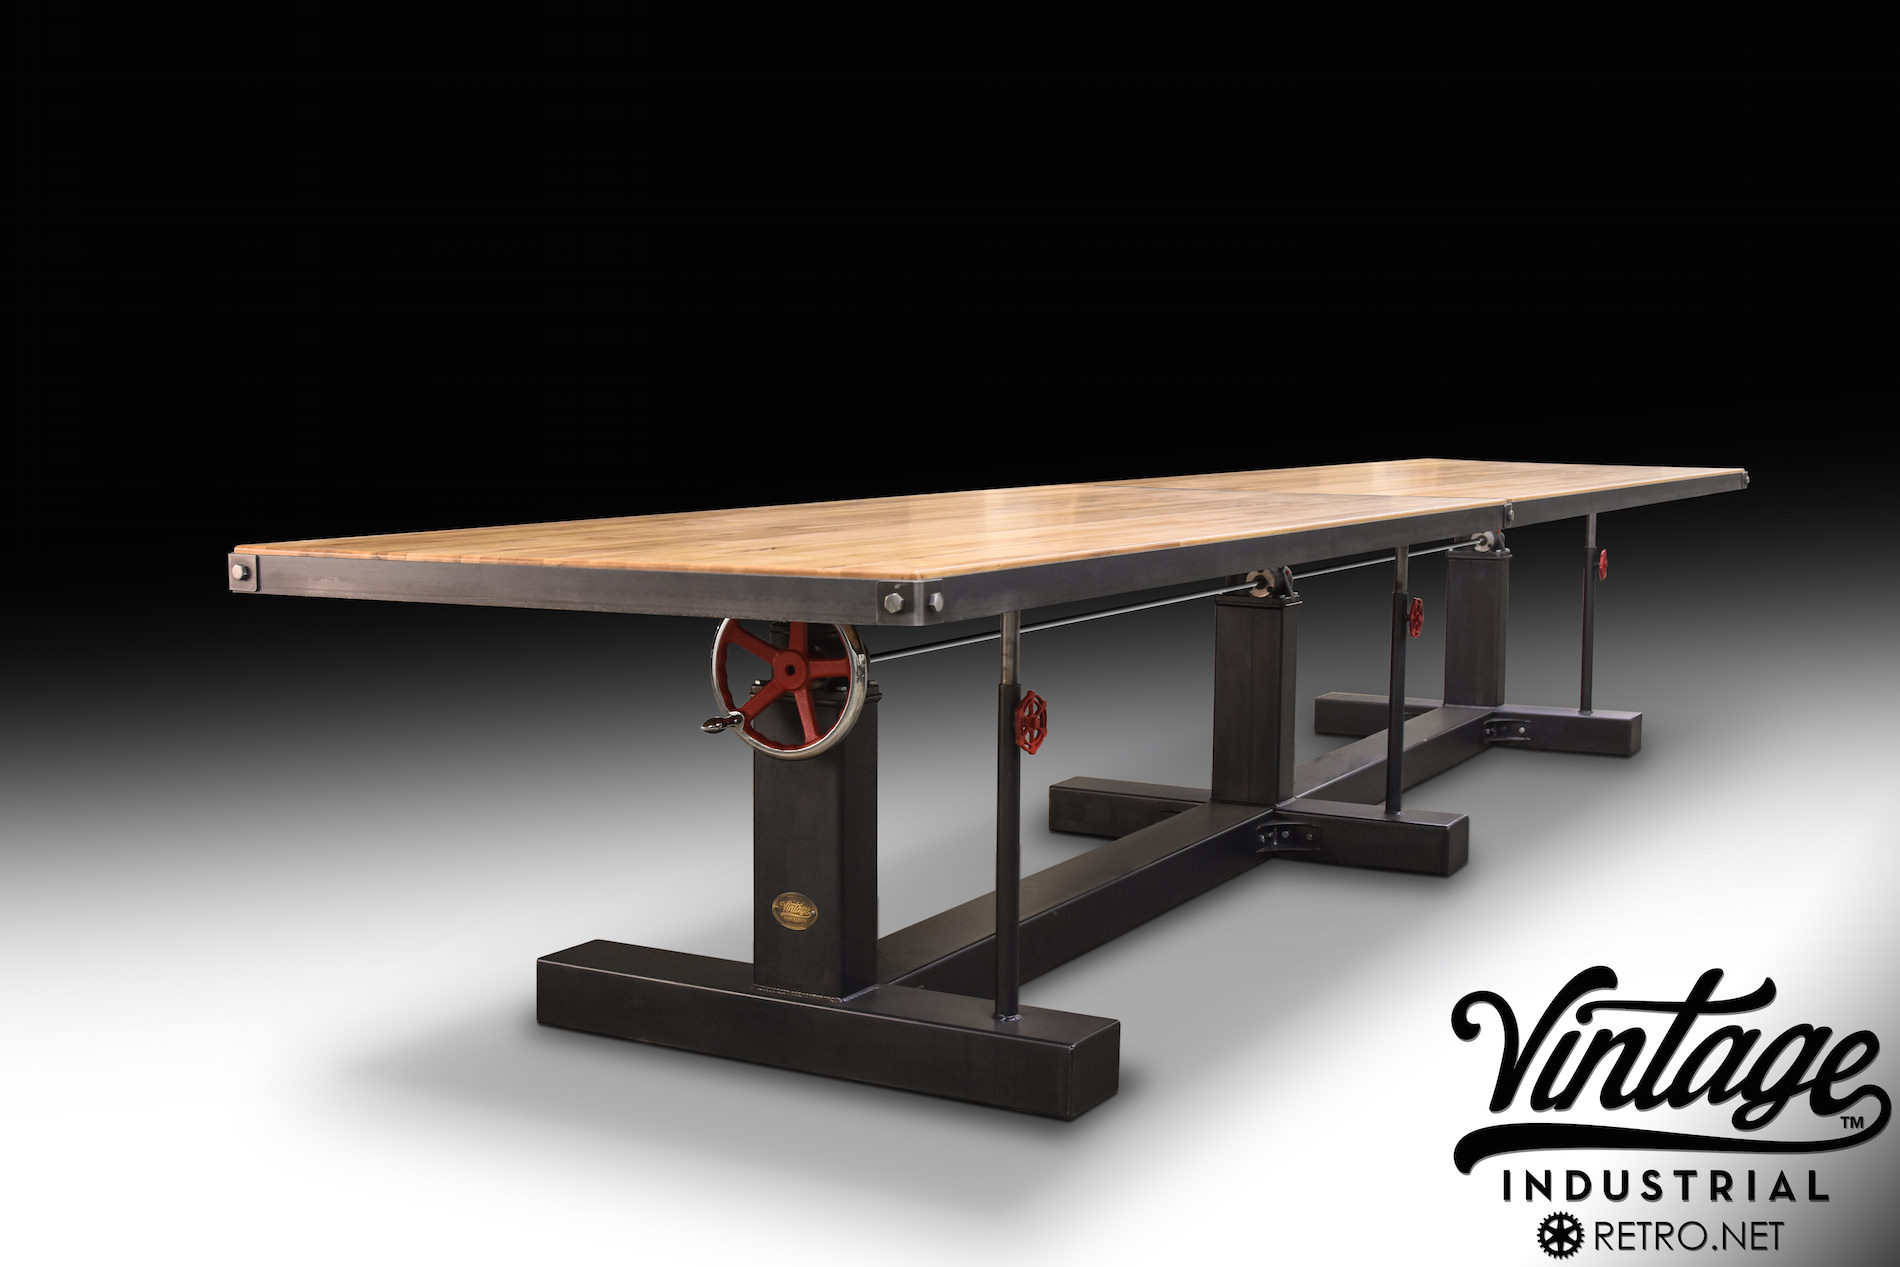 kitchen islands with seating and storage cabinets dayton ohio crank conference table – model #ck23 vintage industrial ...